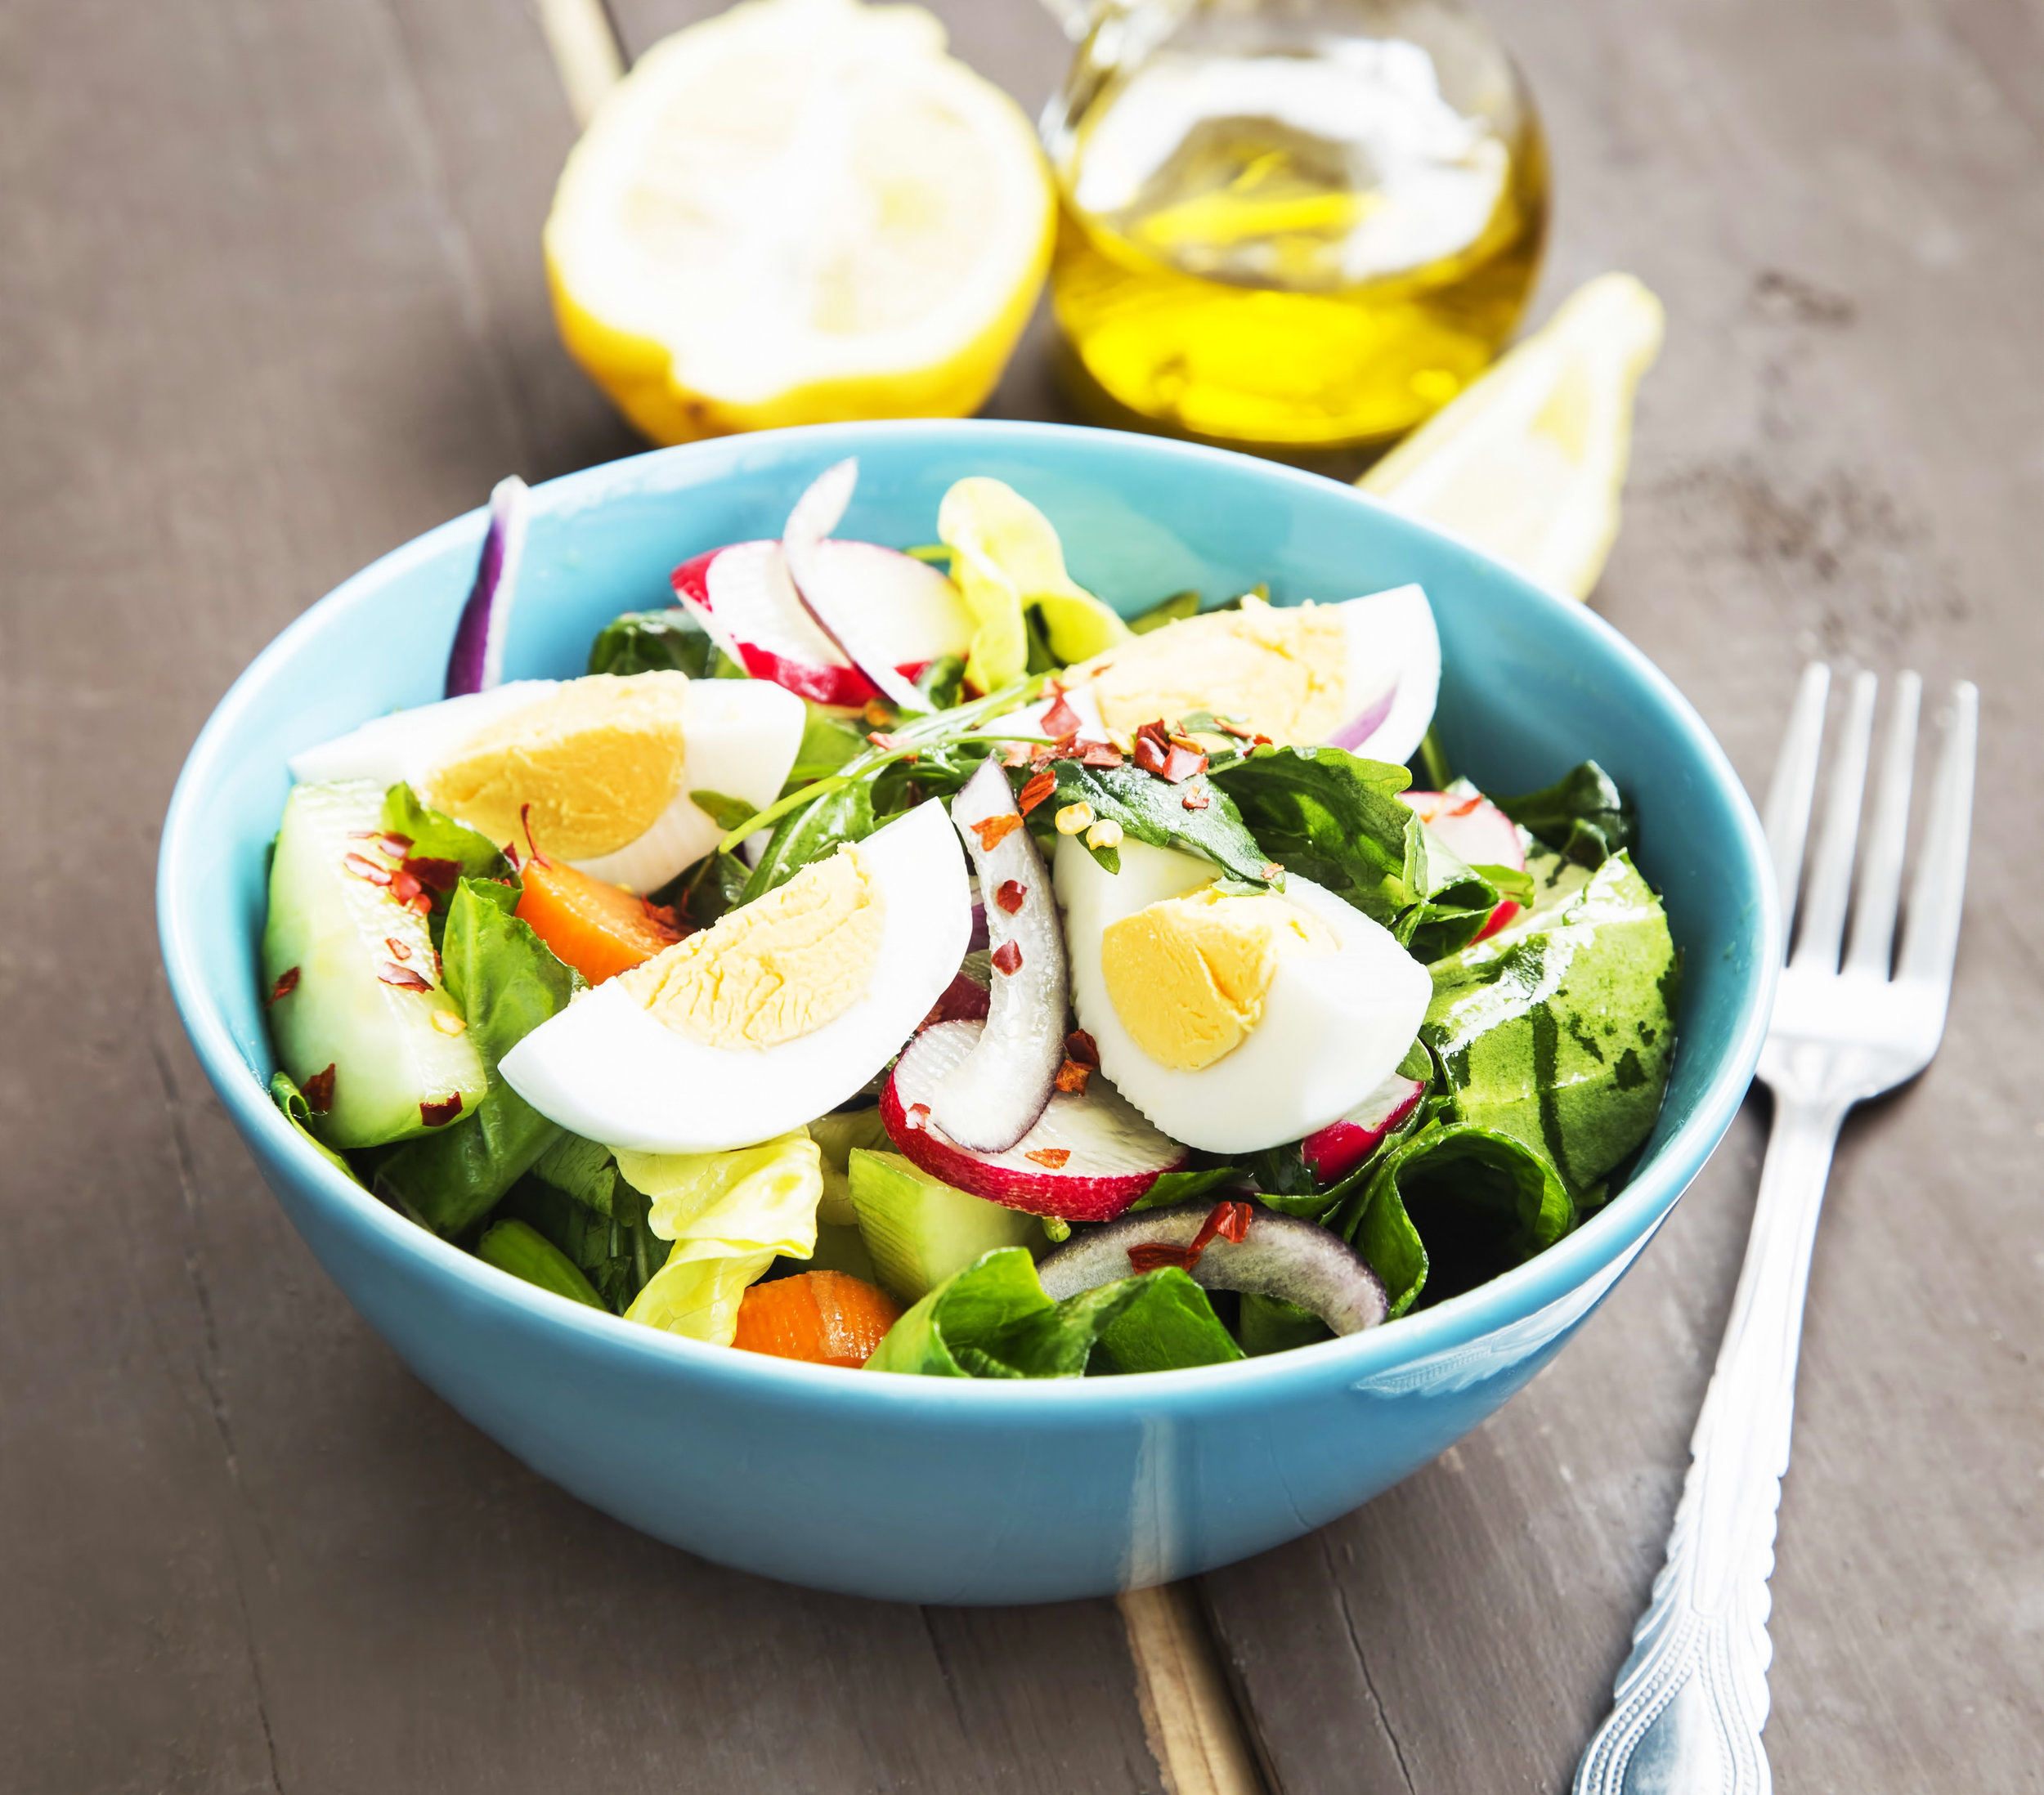 Online Personal Trainer Lunch Recipes -Quick Curried Egg Salad.jpg